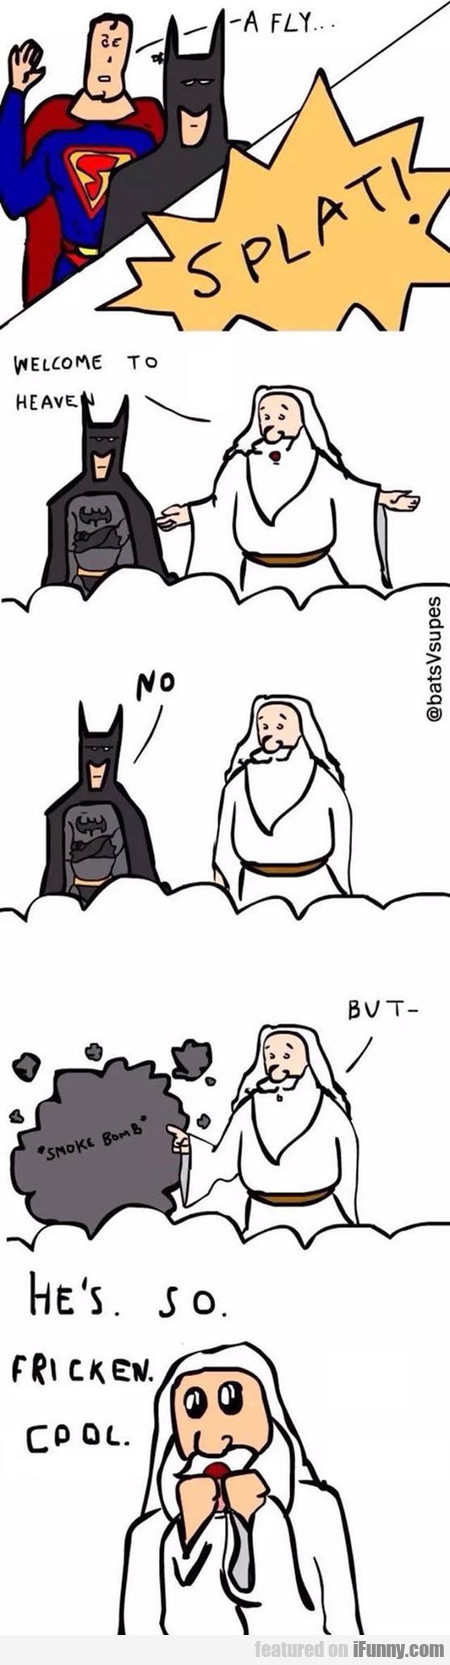 Batman Goes To Heaven